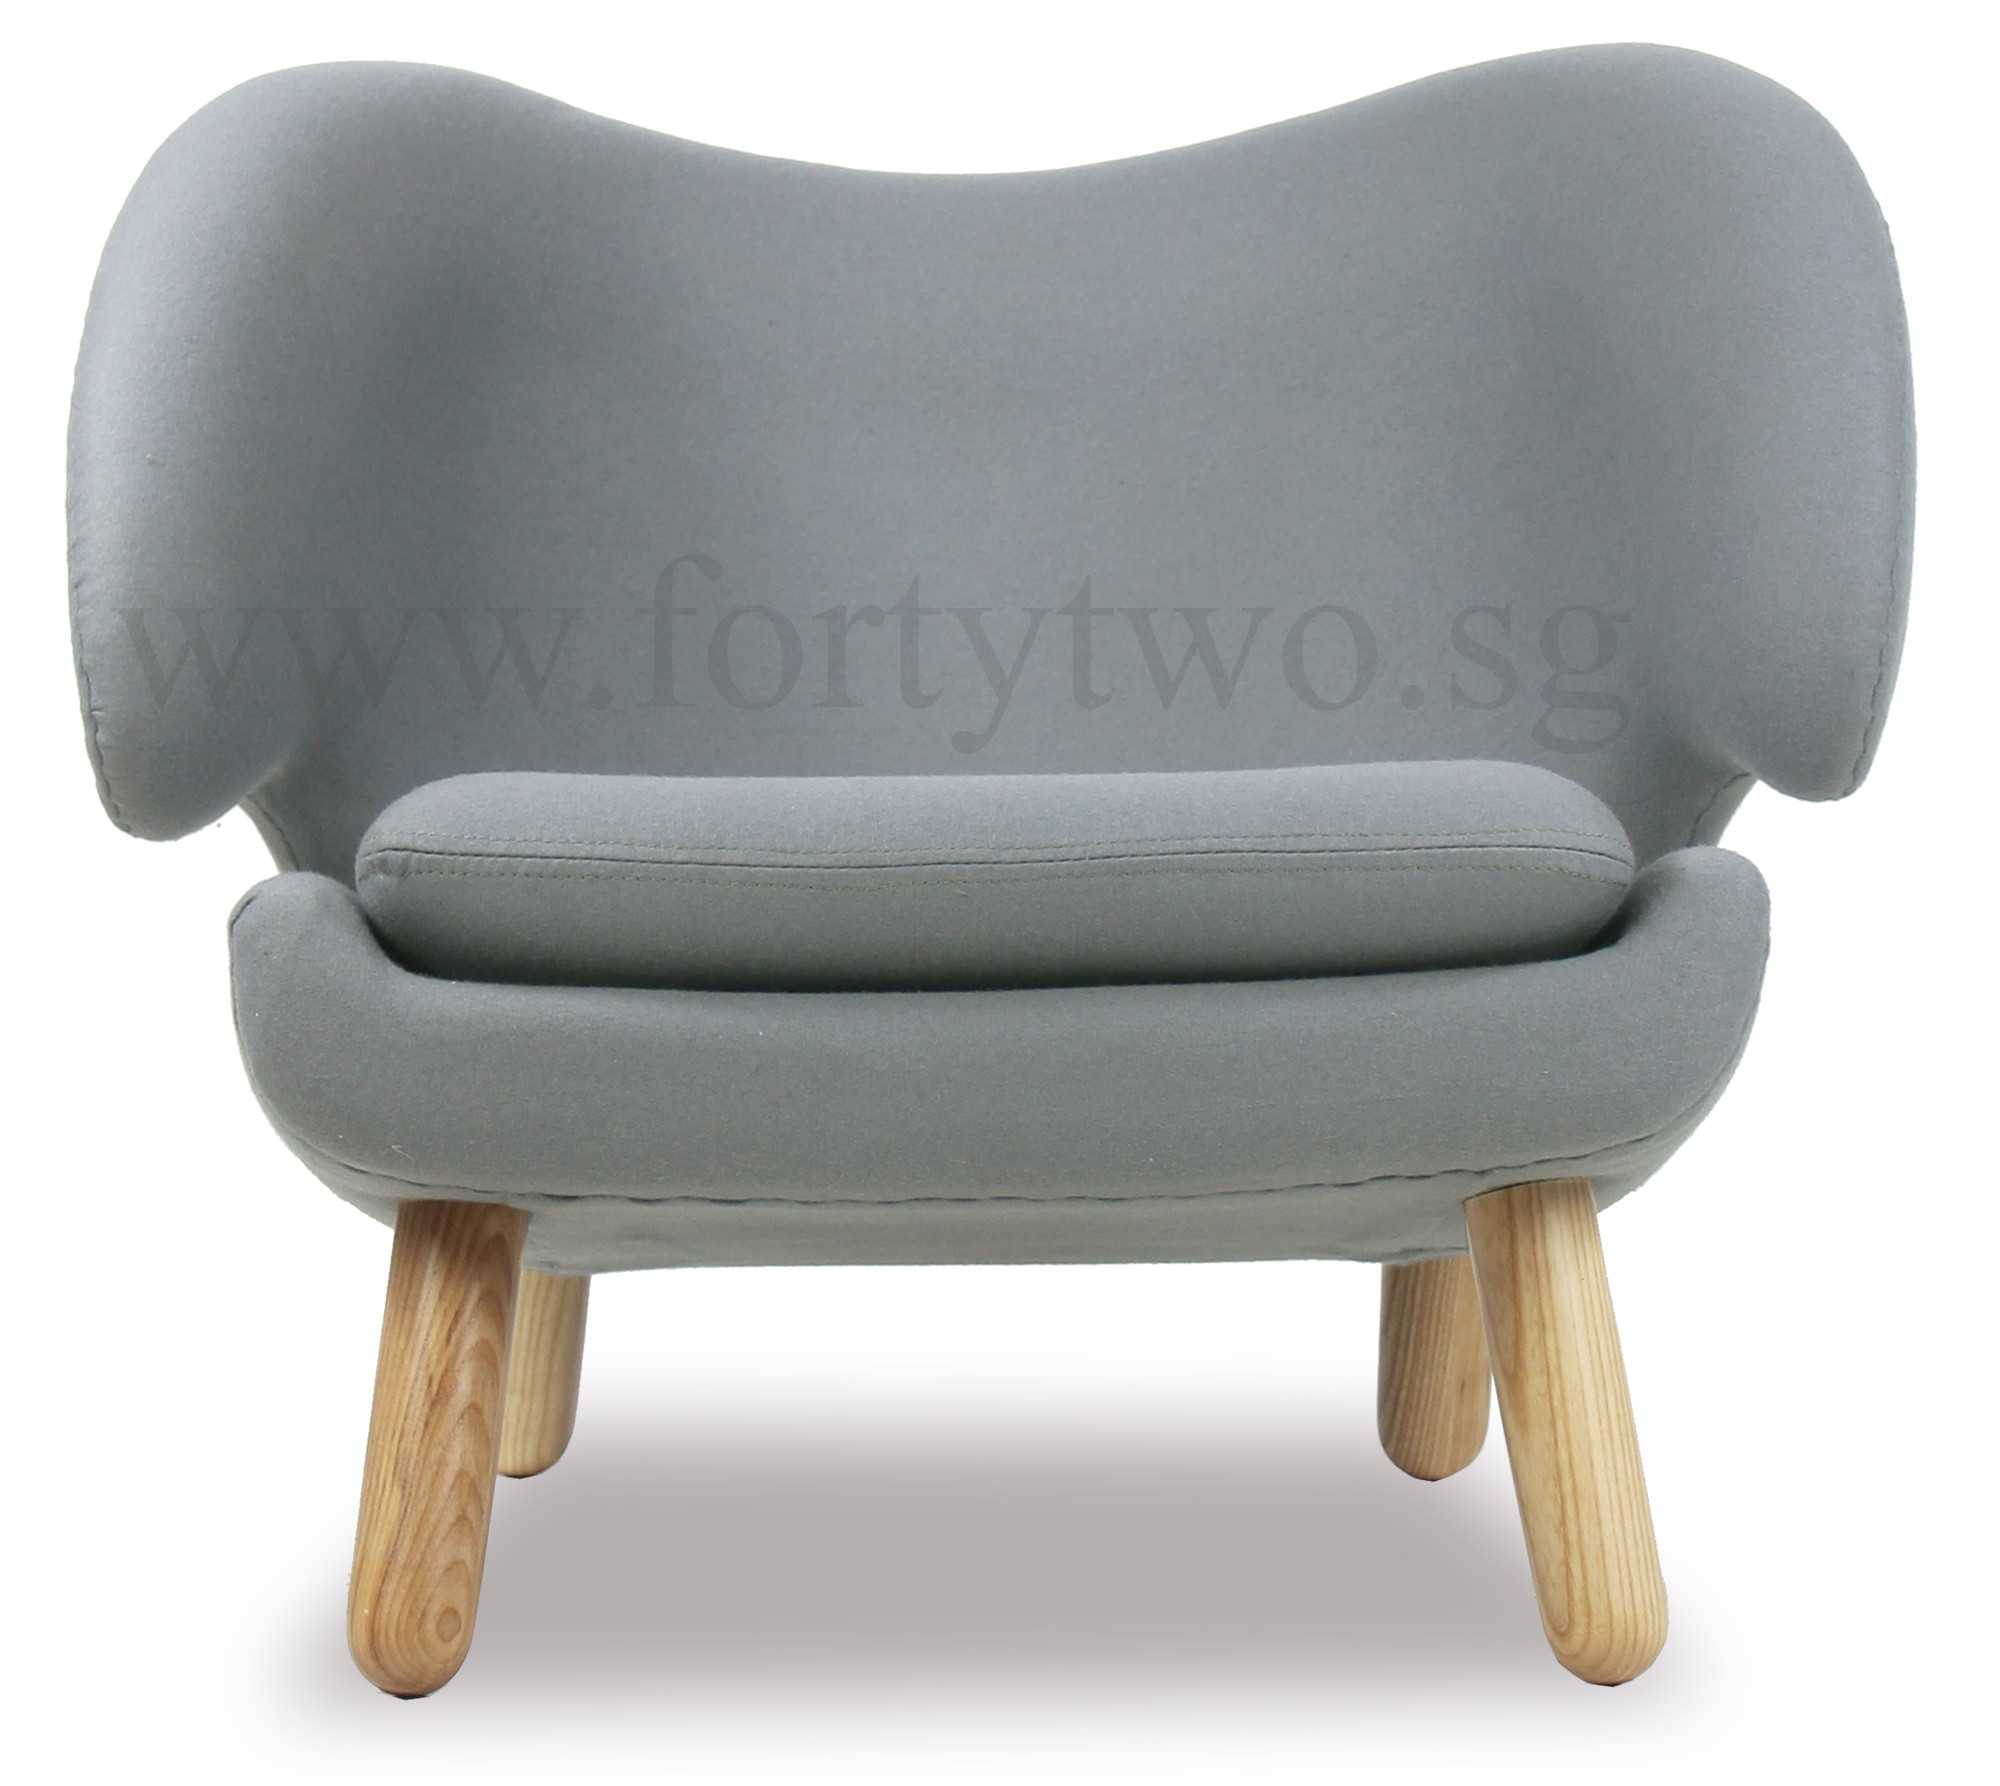 Designer replica pelican chair in light grey furniture for Imitation designer chairs